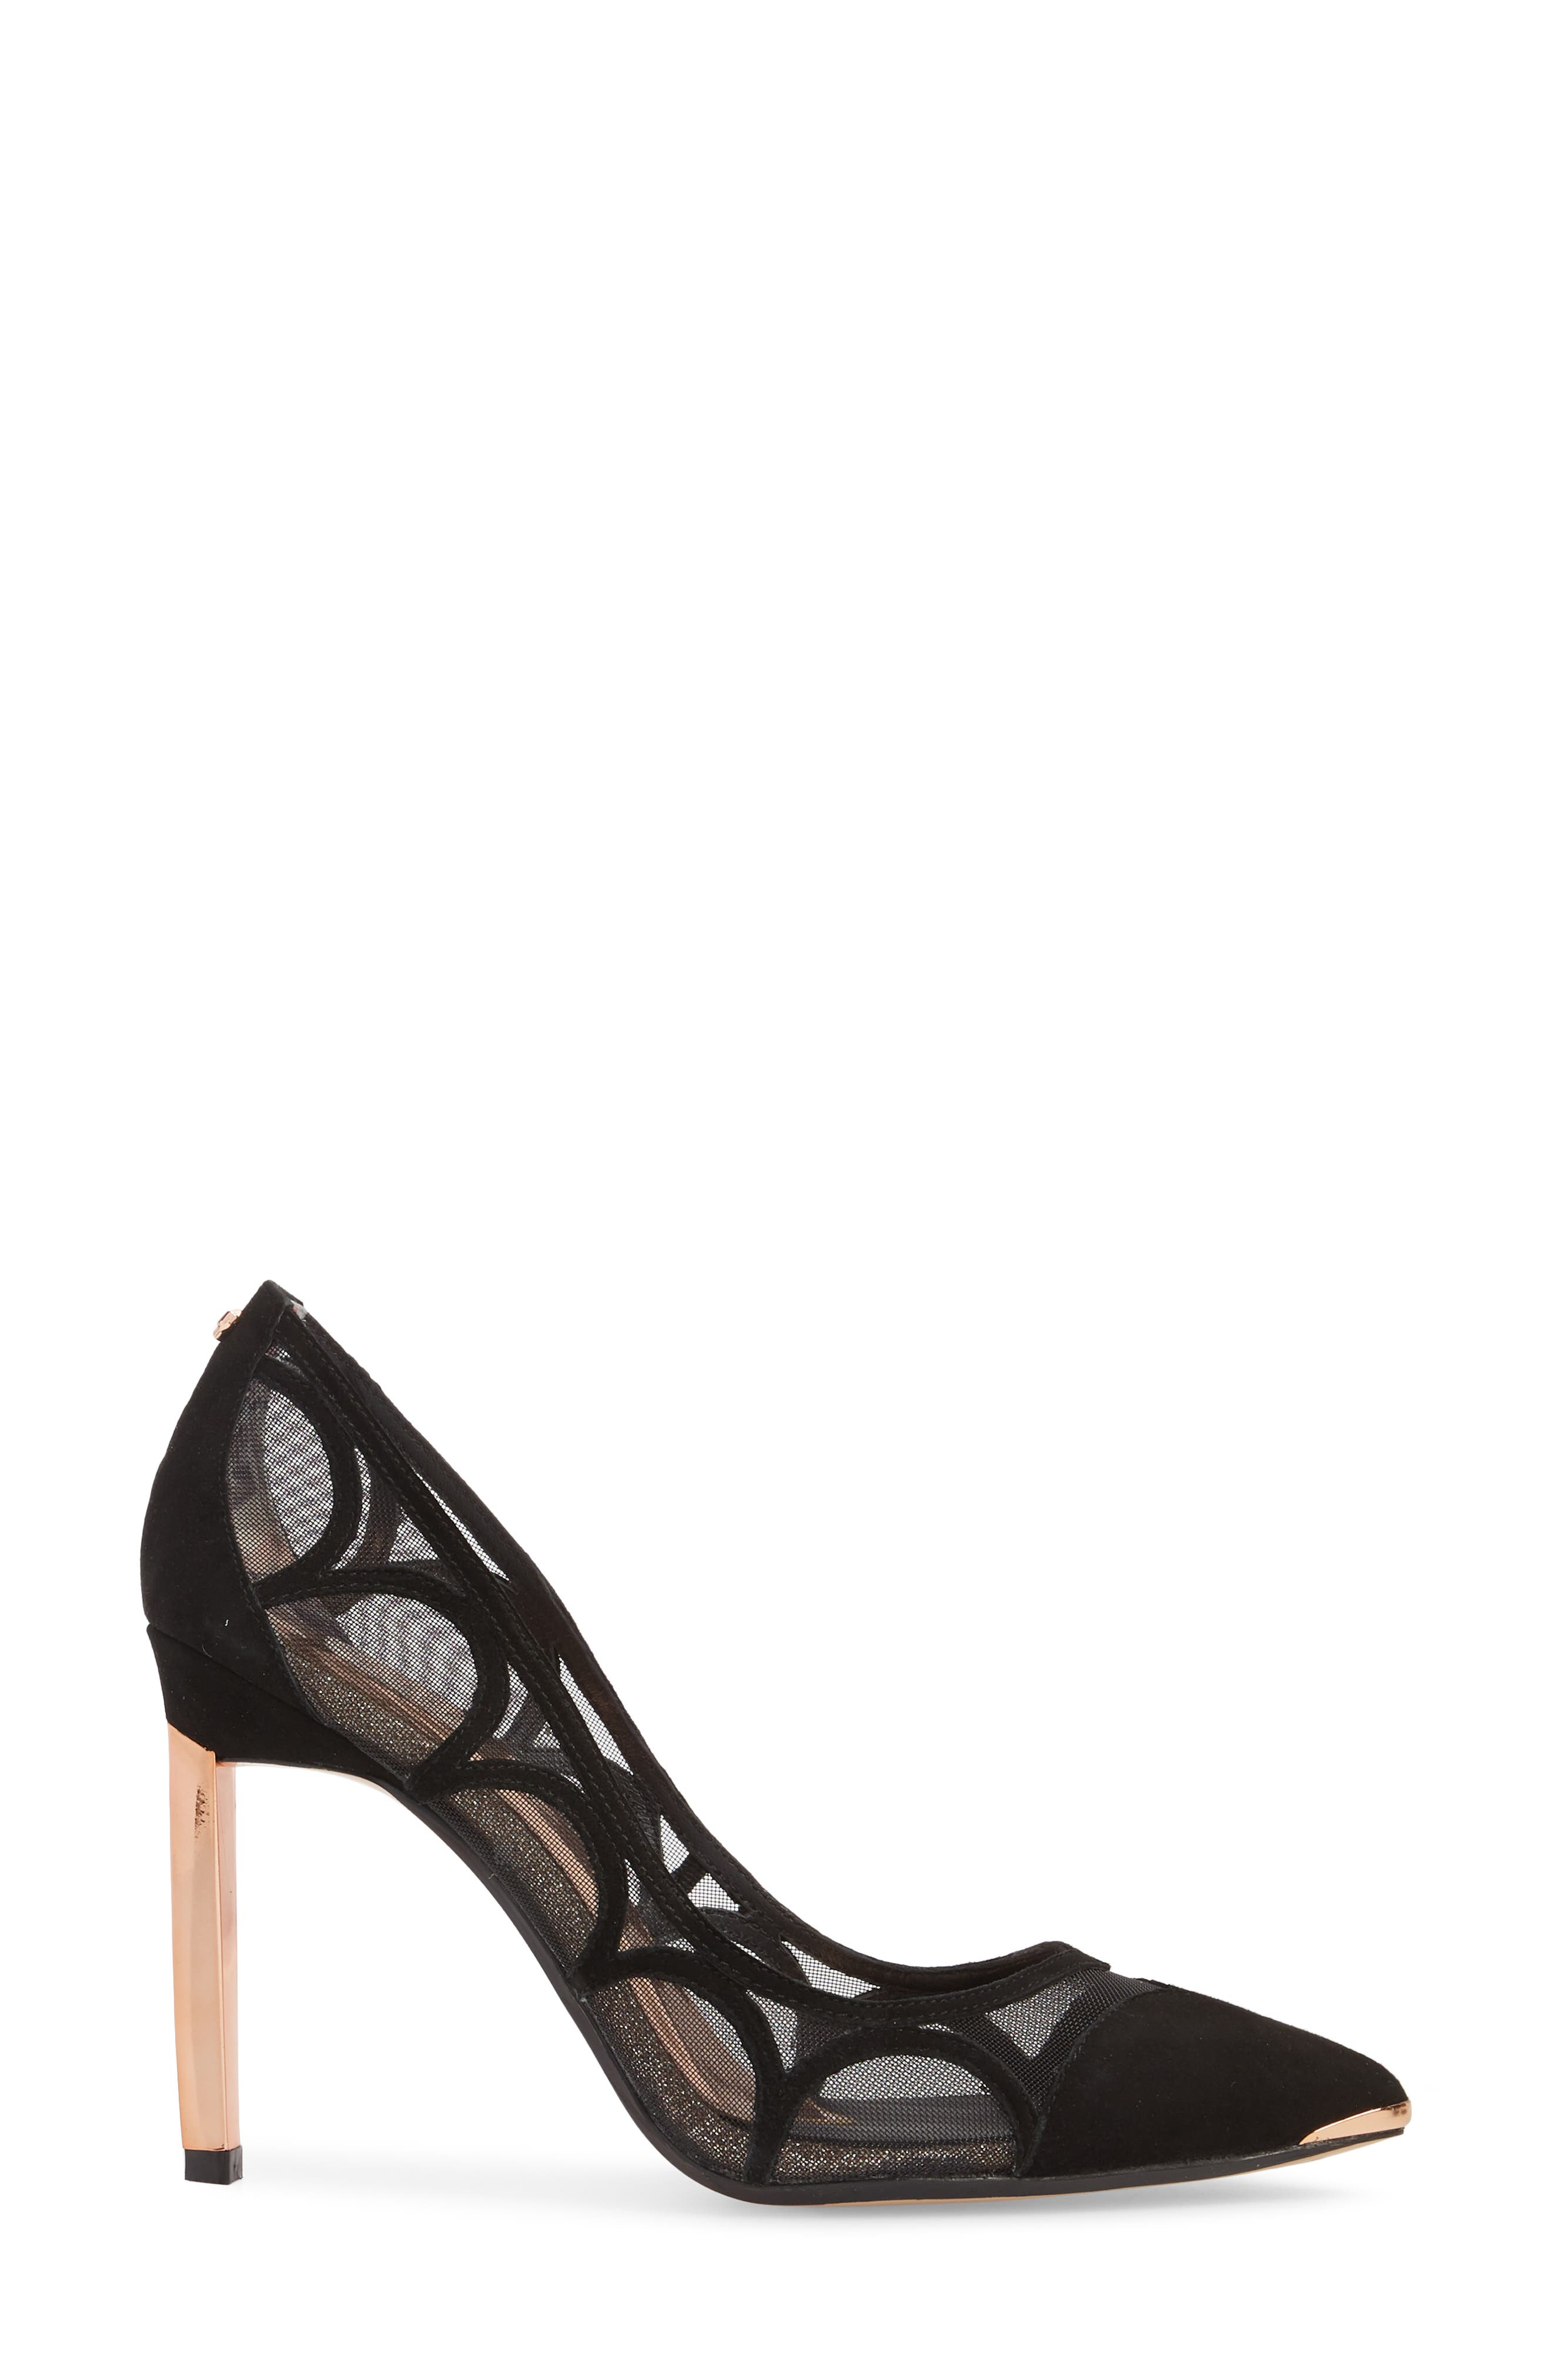 Awletas Pump,                             Alternate thumbnail 3, color,                             Black Satin